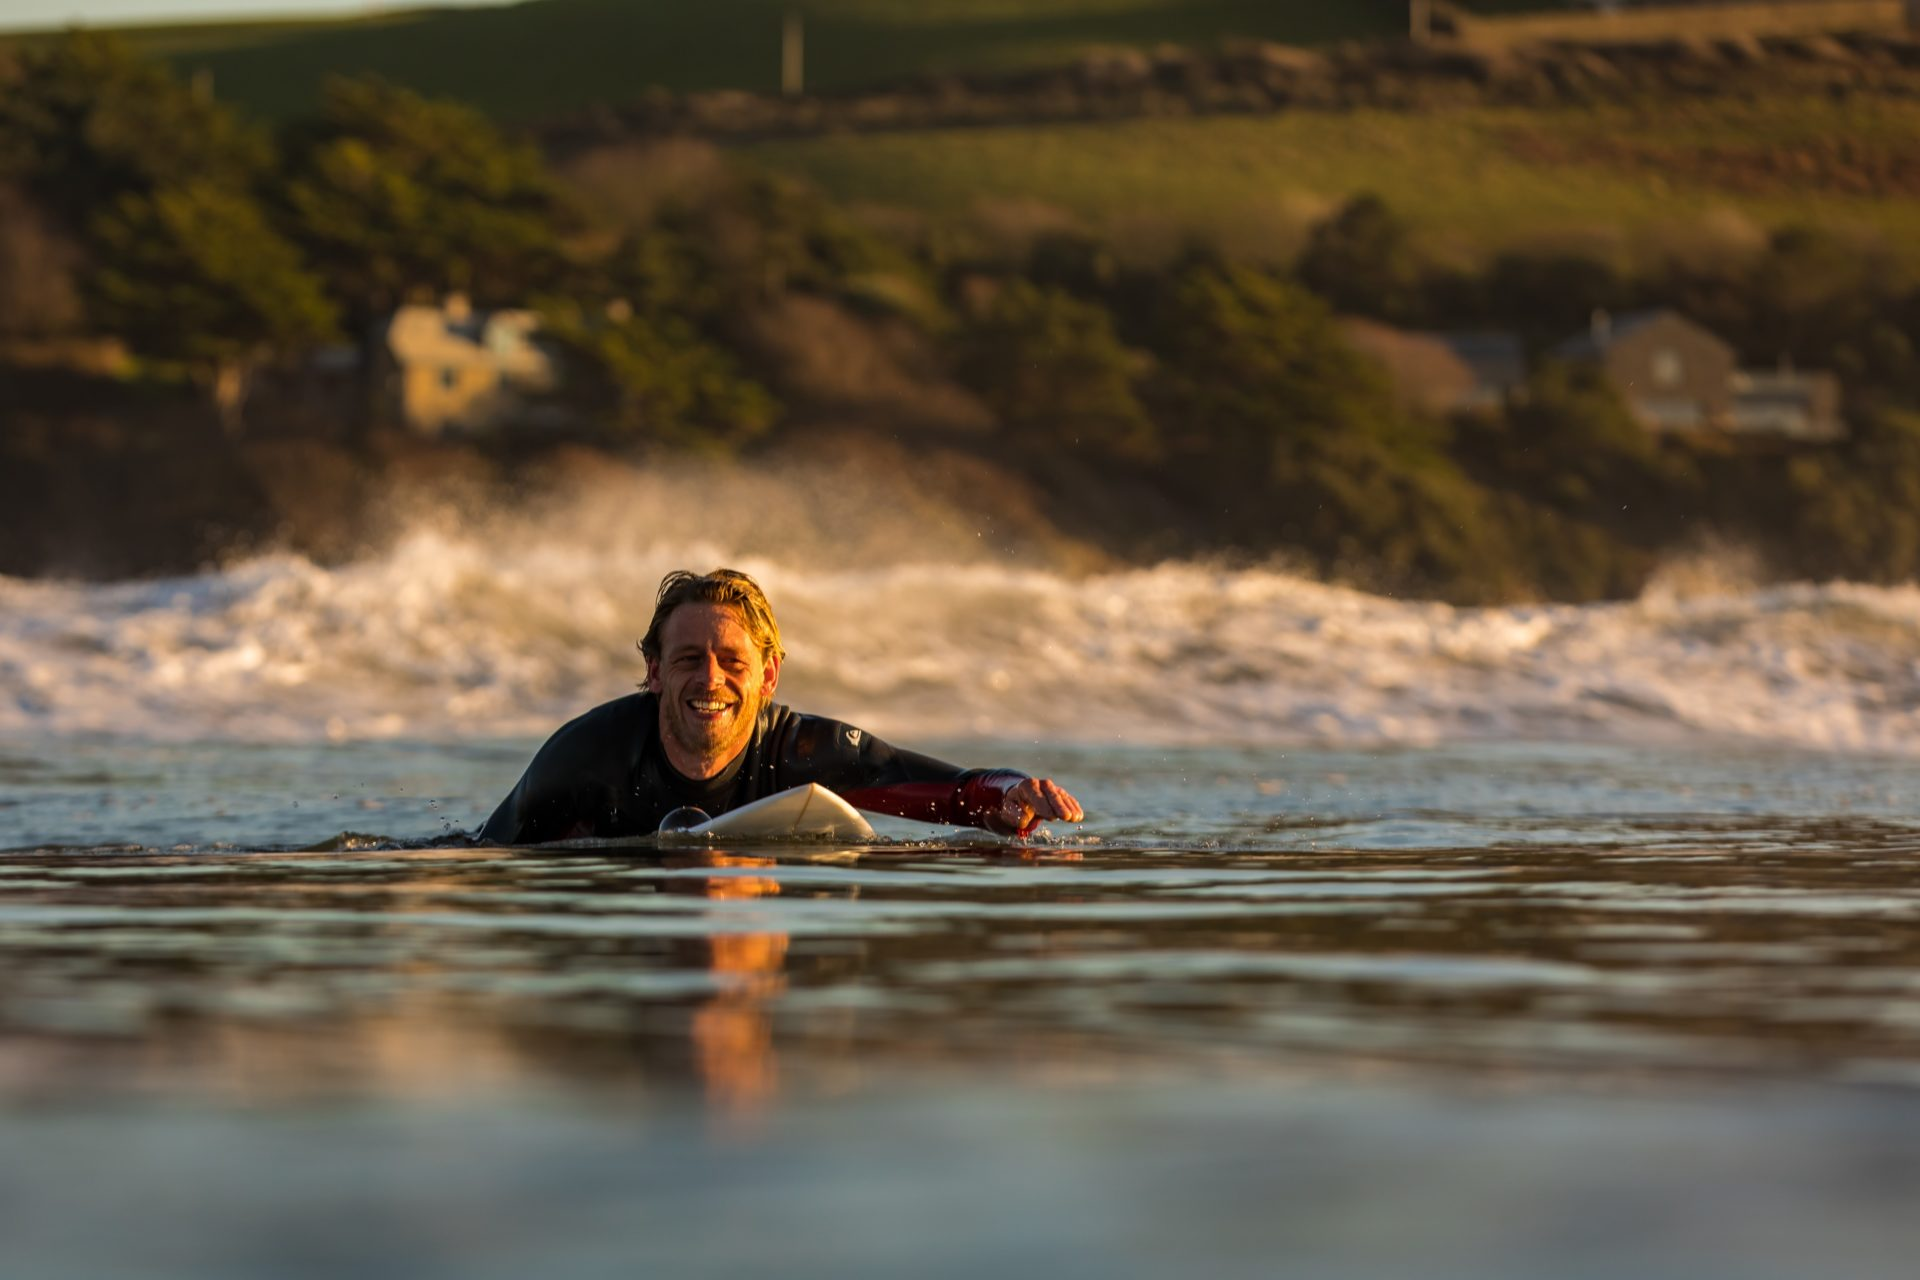 Martin Edwards on a surfboard in the sea smiling to camera